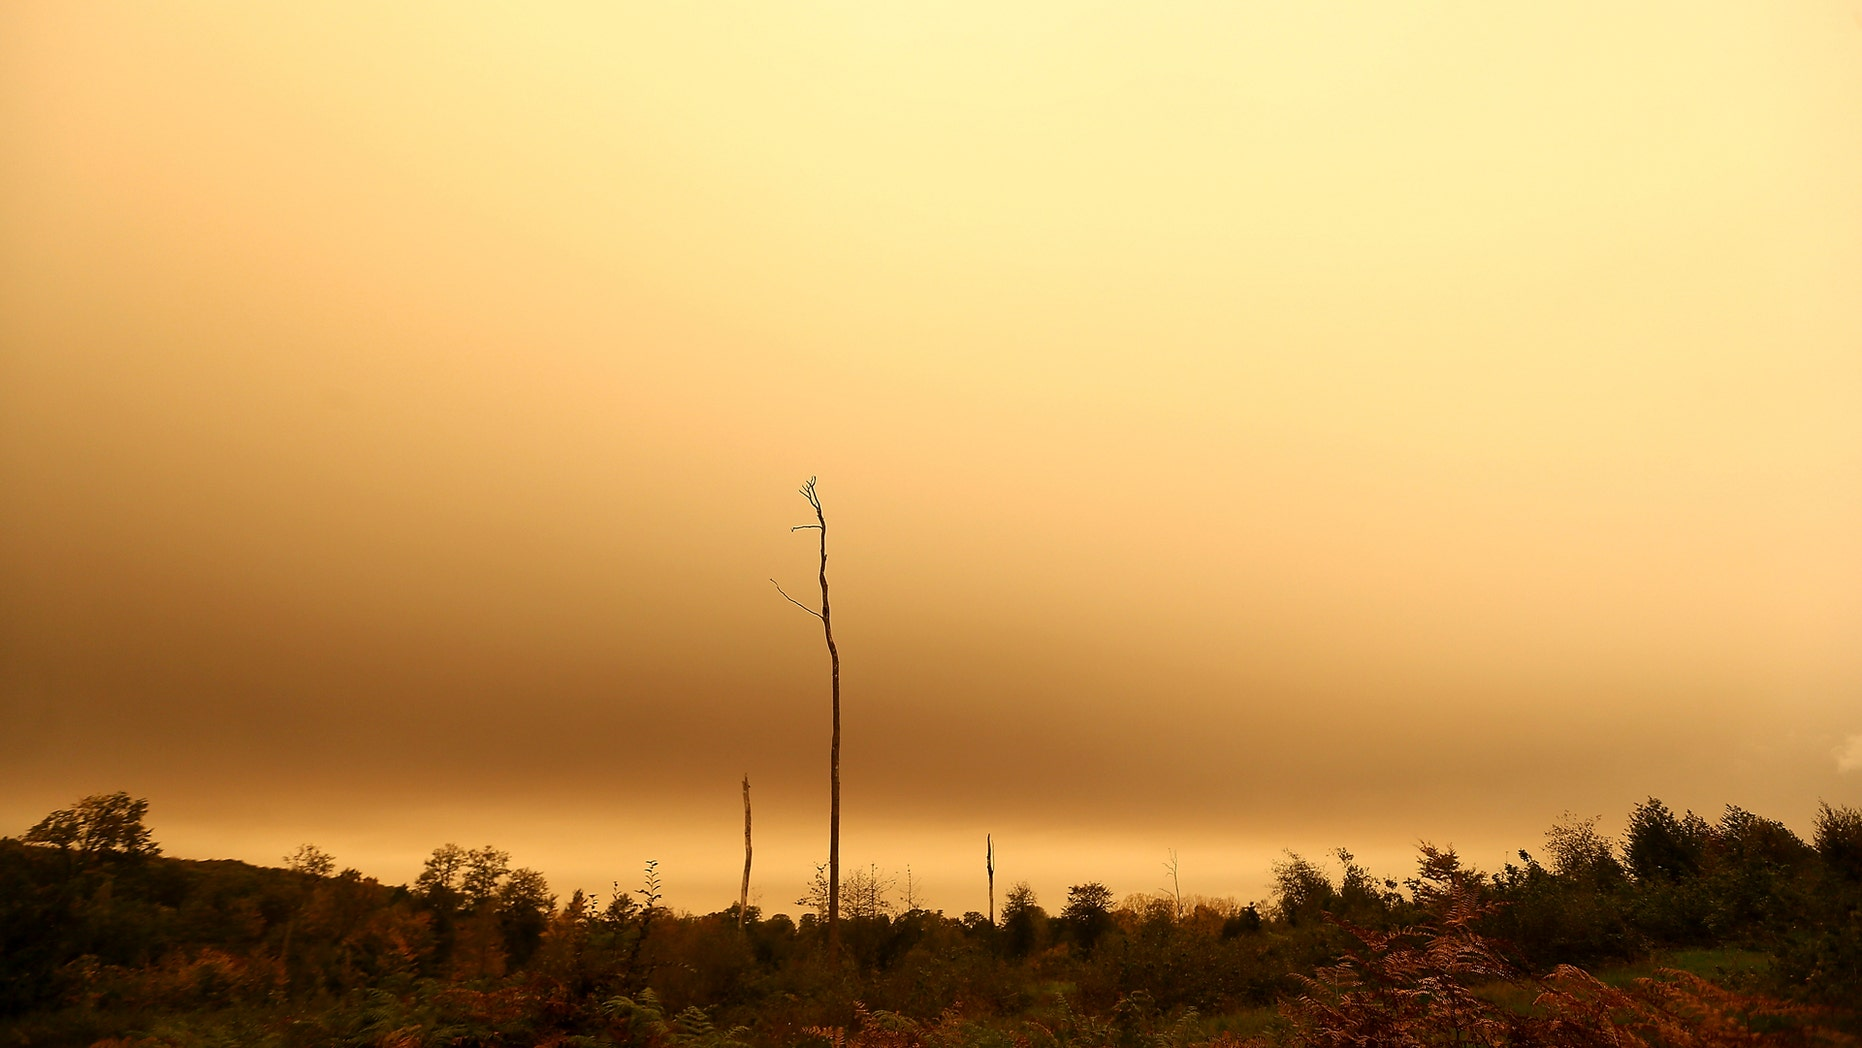 The sky turns orange and yellow in Brittany Monday, Oct.16, 2017 in Chasne-sur-Illet, western France. The sky in France's Brittany region turned yellow as nearby Ophelia storm brought a mix of sand from Sahara and particles from Spain and Portugal's forest fires over the region. Ophelia post-tropical cyclone passed west of the Brittany coast Monday before bringing violent winds to Ireland and the United Kingdom. (AP Photo/David Vincent)